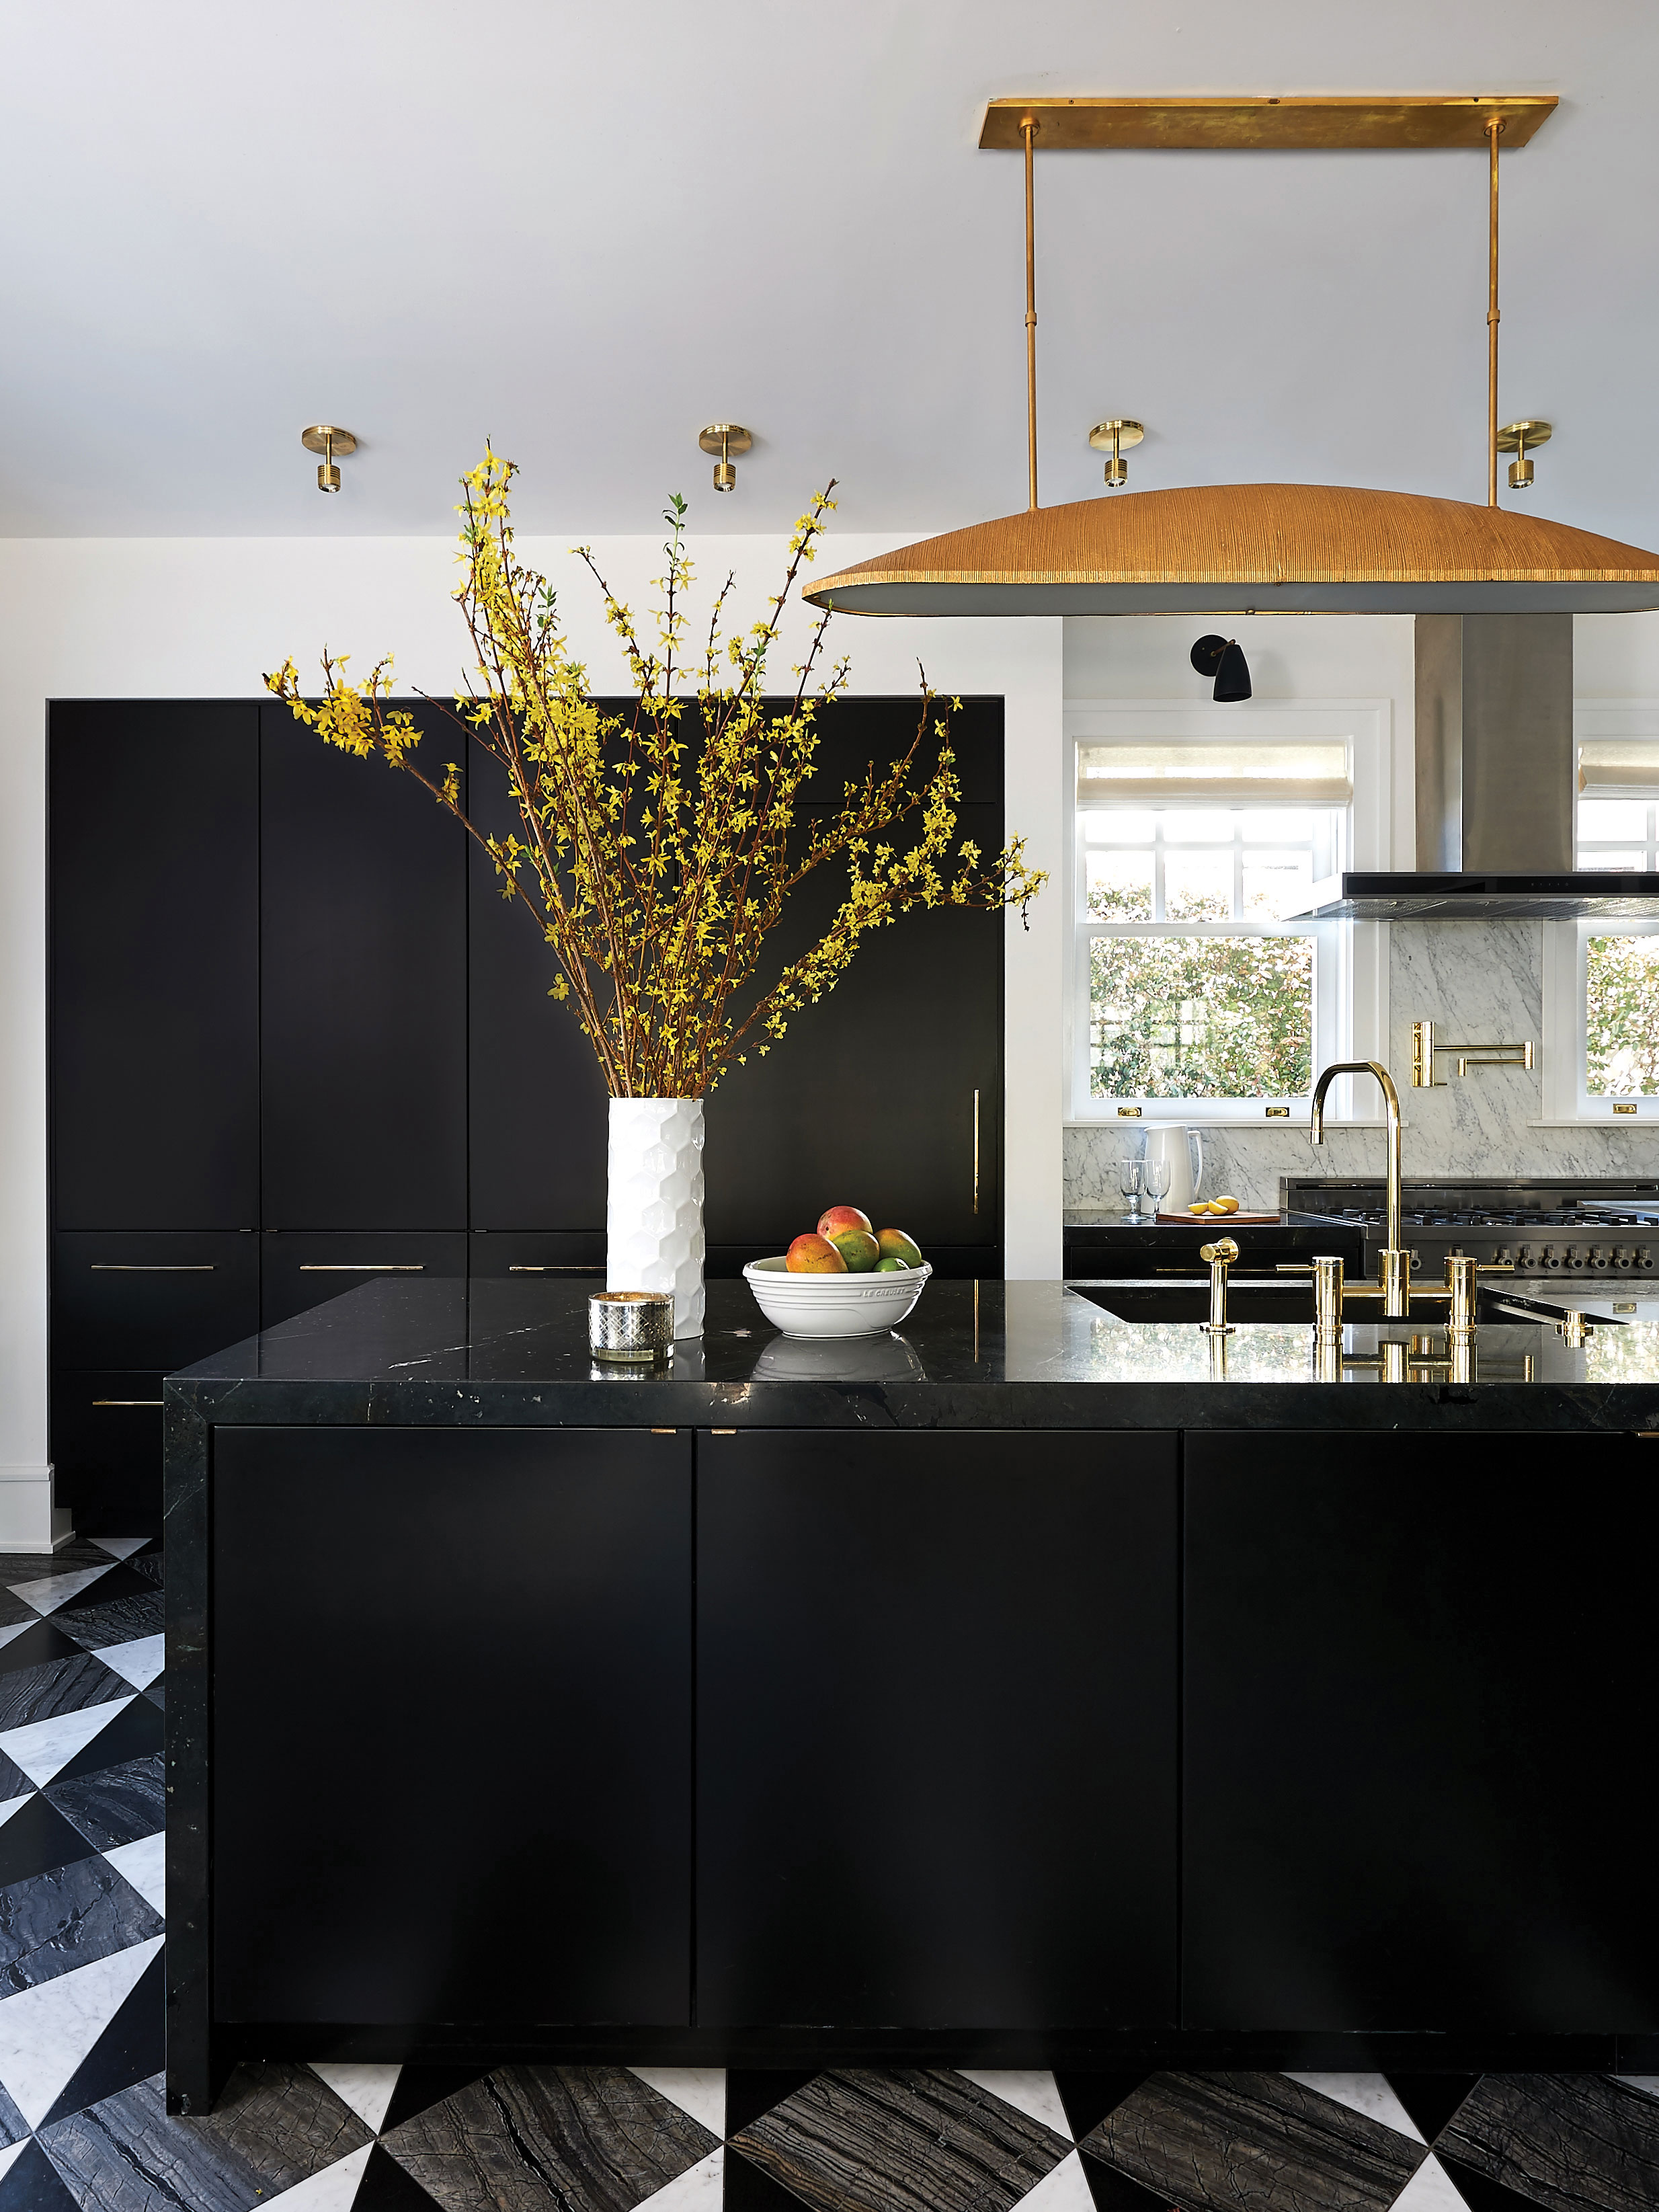 """Kitchen of the Year- -  """"When interior designer Kristin Lomauro-Boom put on her creative hat for her own kitchen, she got to do something a little out there, something glitzier than a typical kitchen. The room is still highly functional, but looks like a glamorous entertaining space from Hollywood's golden age. The flashiness works well with the regency flair of the 1912 Point Loma house that it's in—and the pair of lion statues that greet you at the entrance.""""-San Diego Home and GardenSee article at: https://www.sandiegohomegarden.com/2019/06/13/kitchens-of-the-year-2019-winners-a-golden-age-kitchen/"""